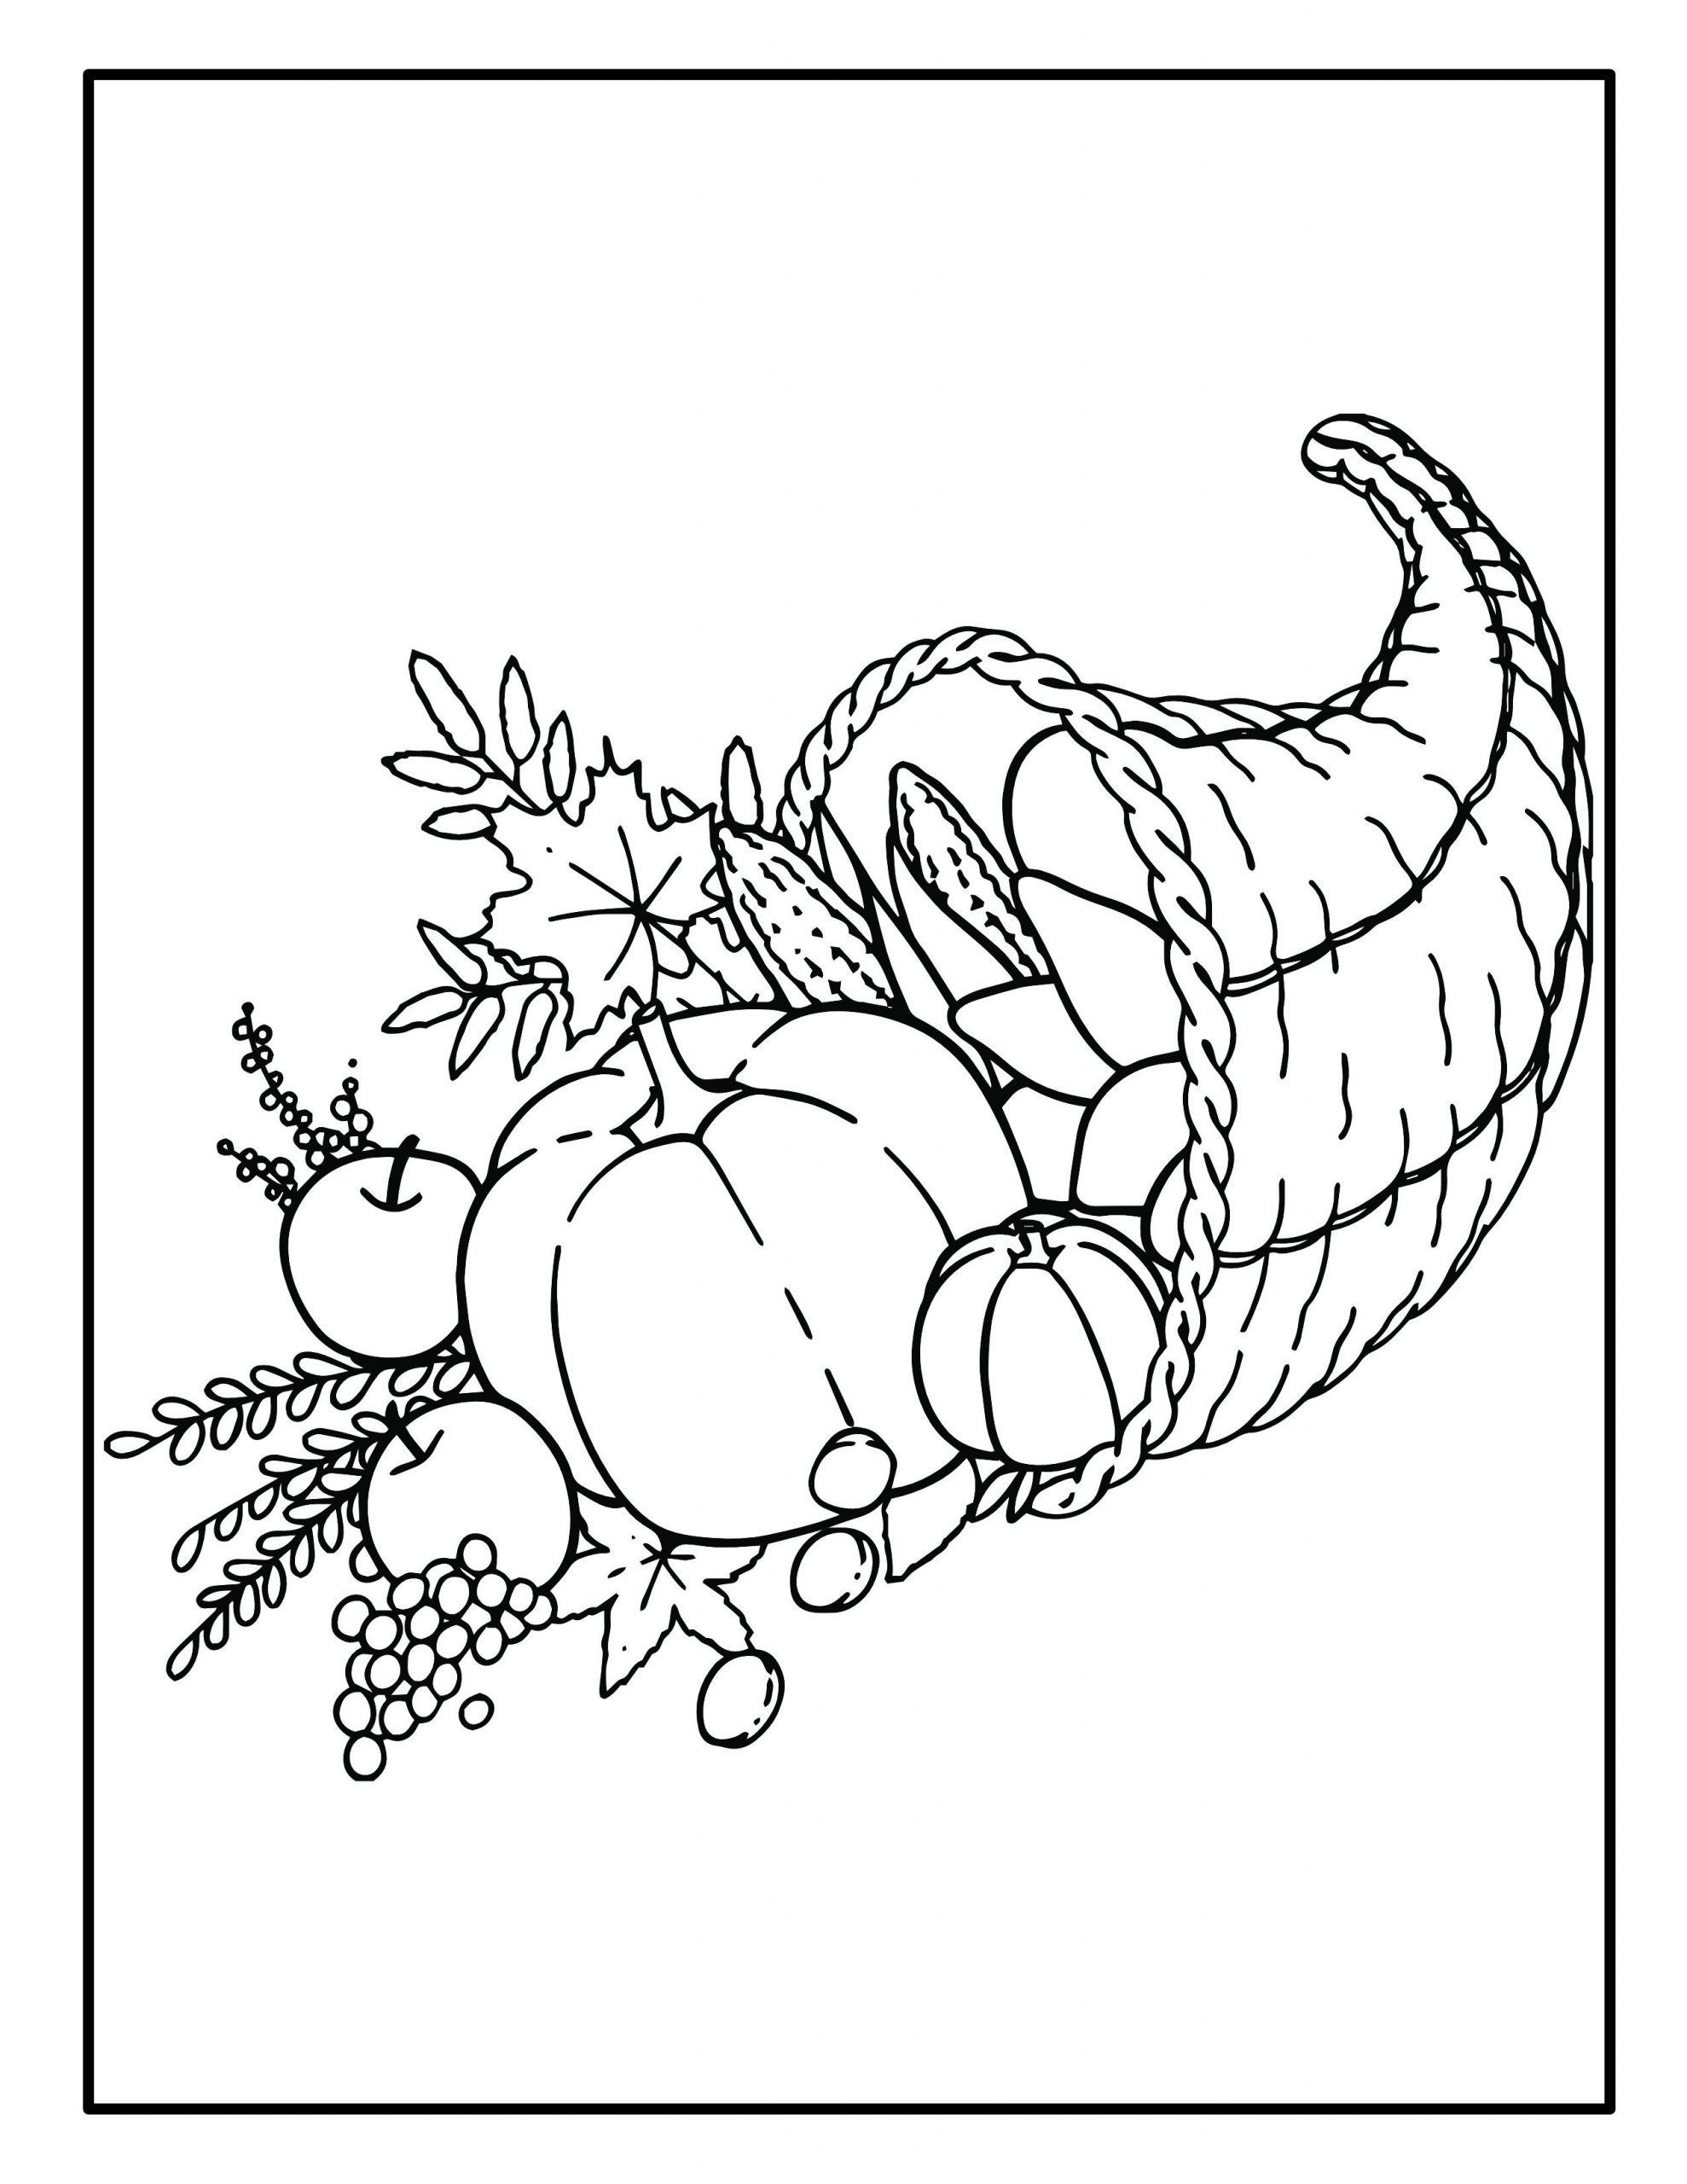 Free Printable Thanksgiving Coloring Pages Valentines Day Coloring Page Thanksgiving Coloring Pages Coloring Pages [ 2560 x 1978 Pixel ]